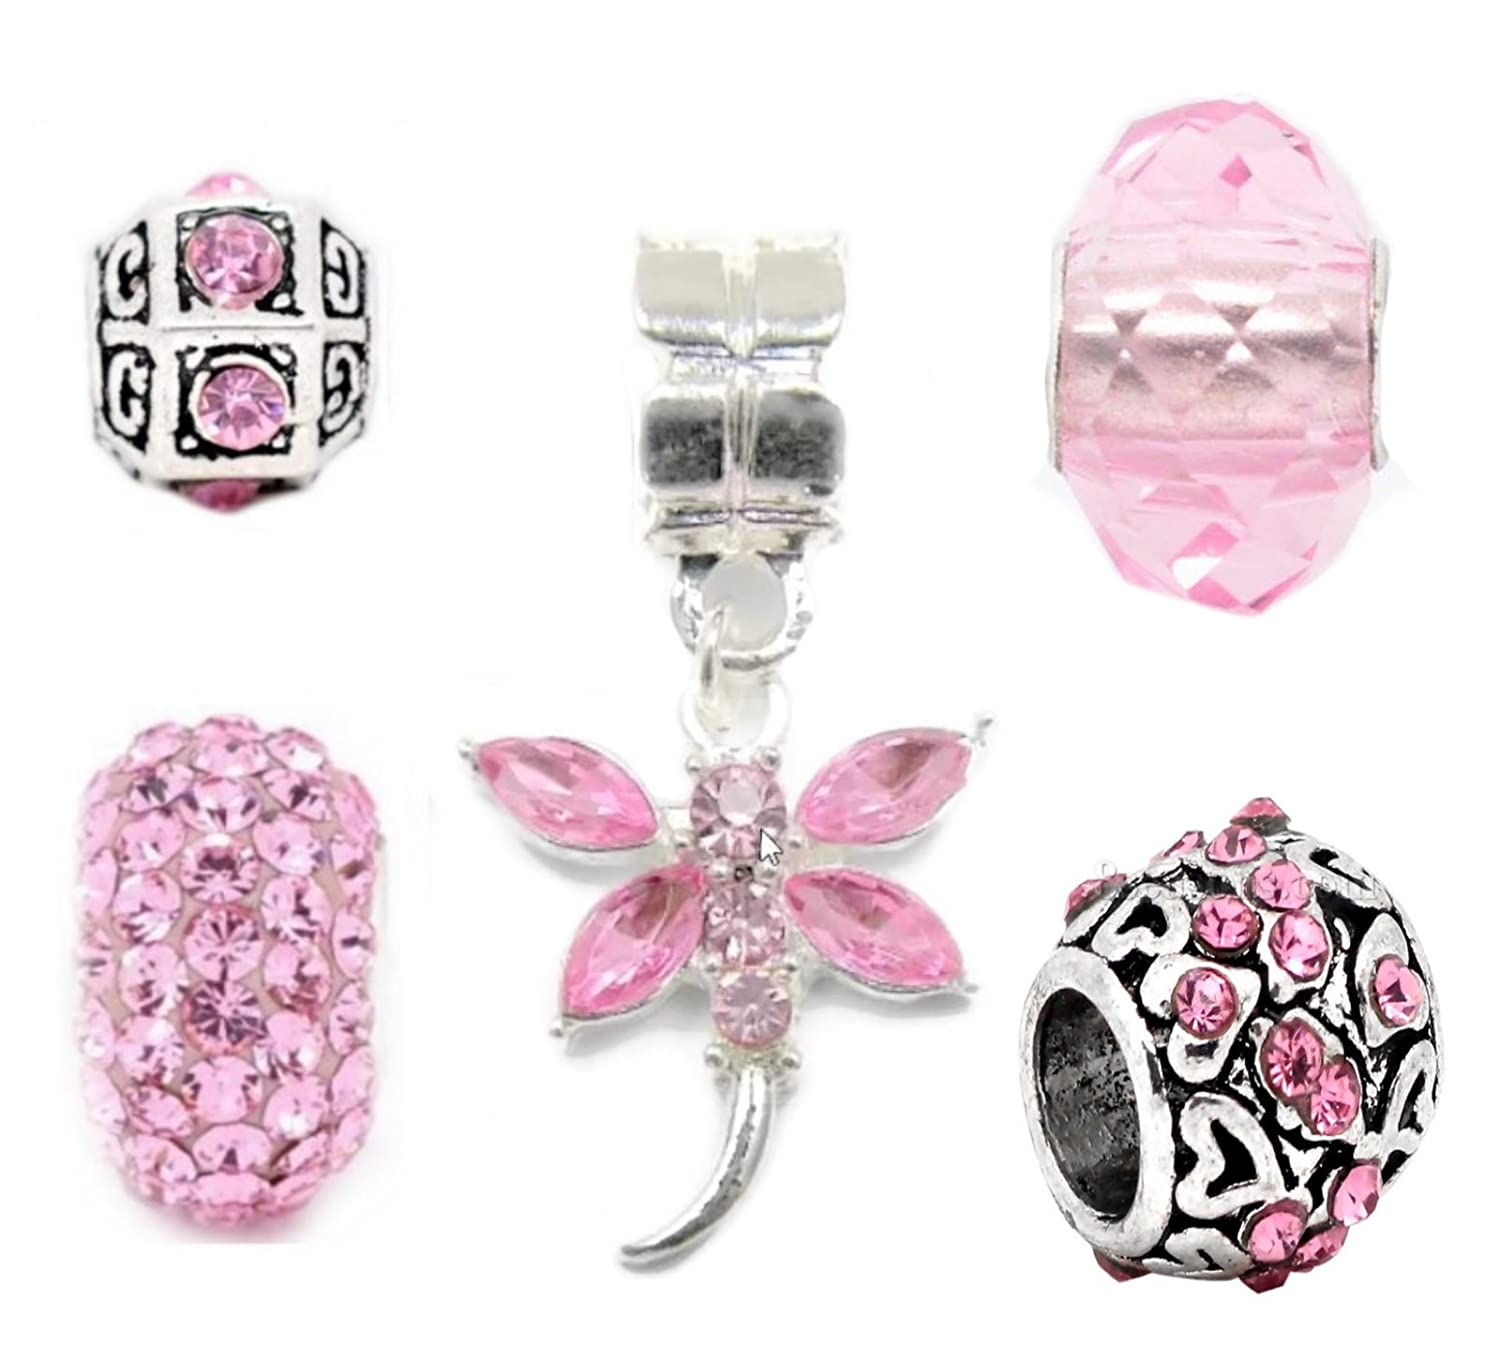 c42be5889 ... low price truly charming silver pink charms bead set of 5 pandora troll  chamilia style charm